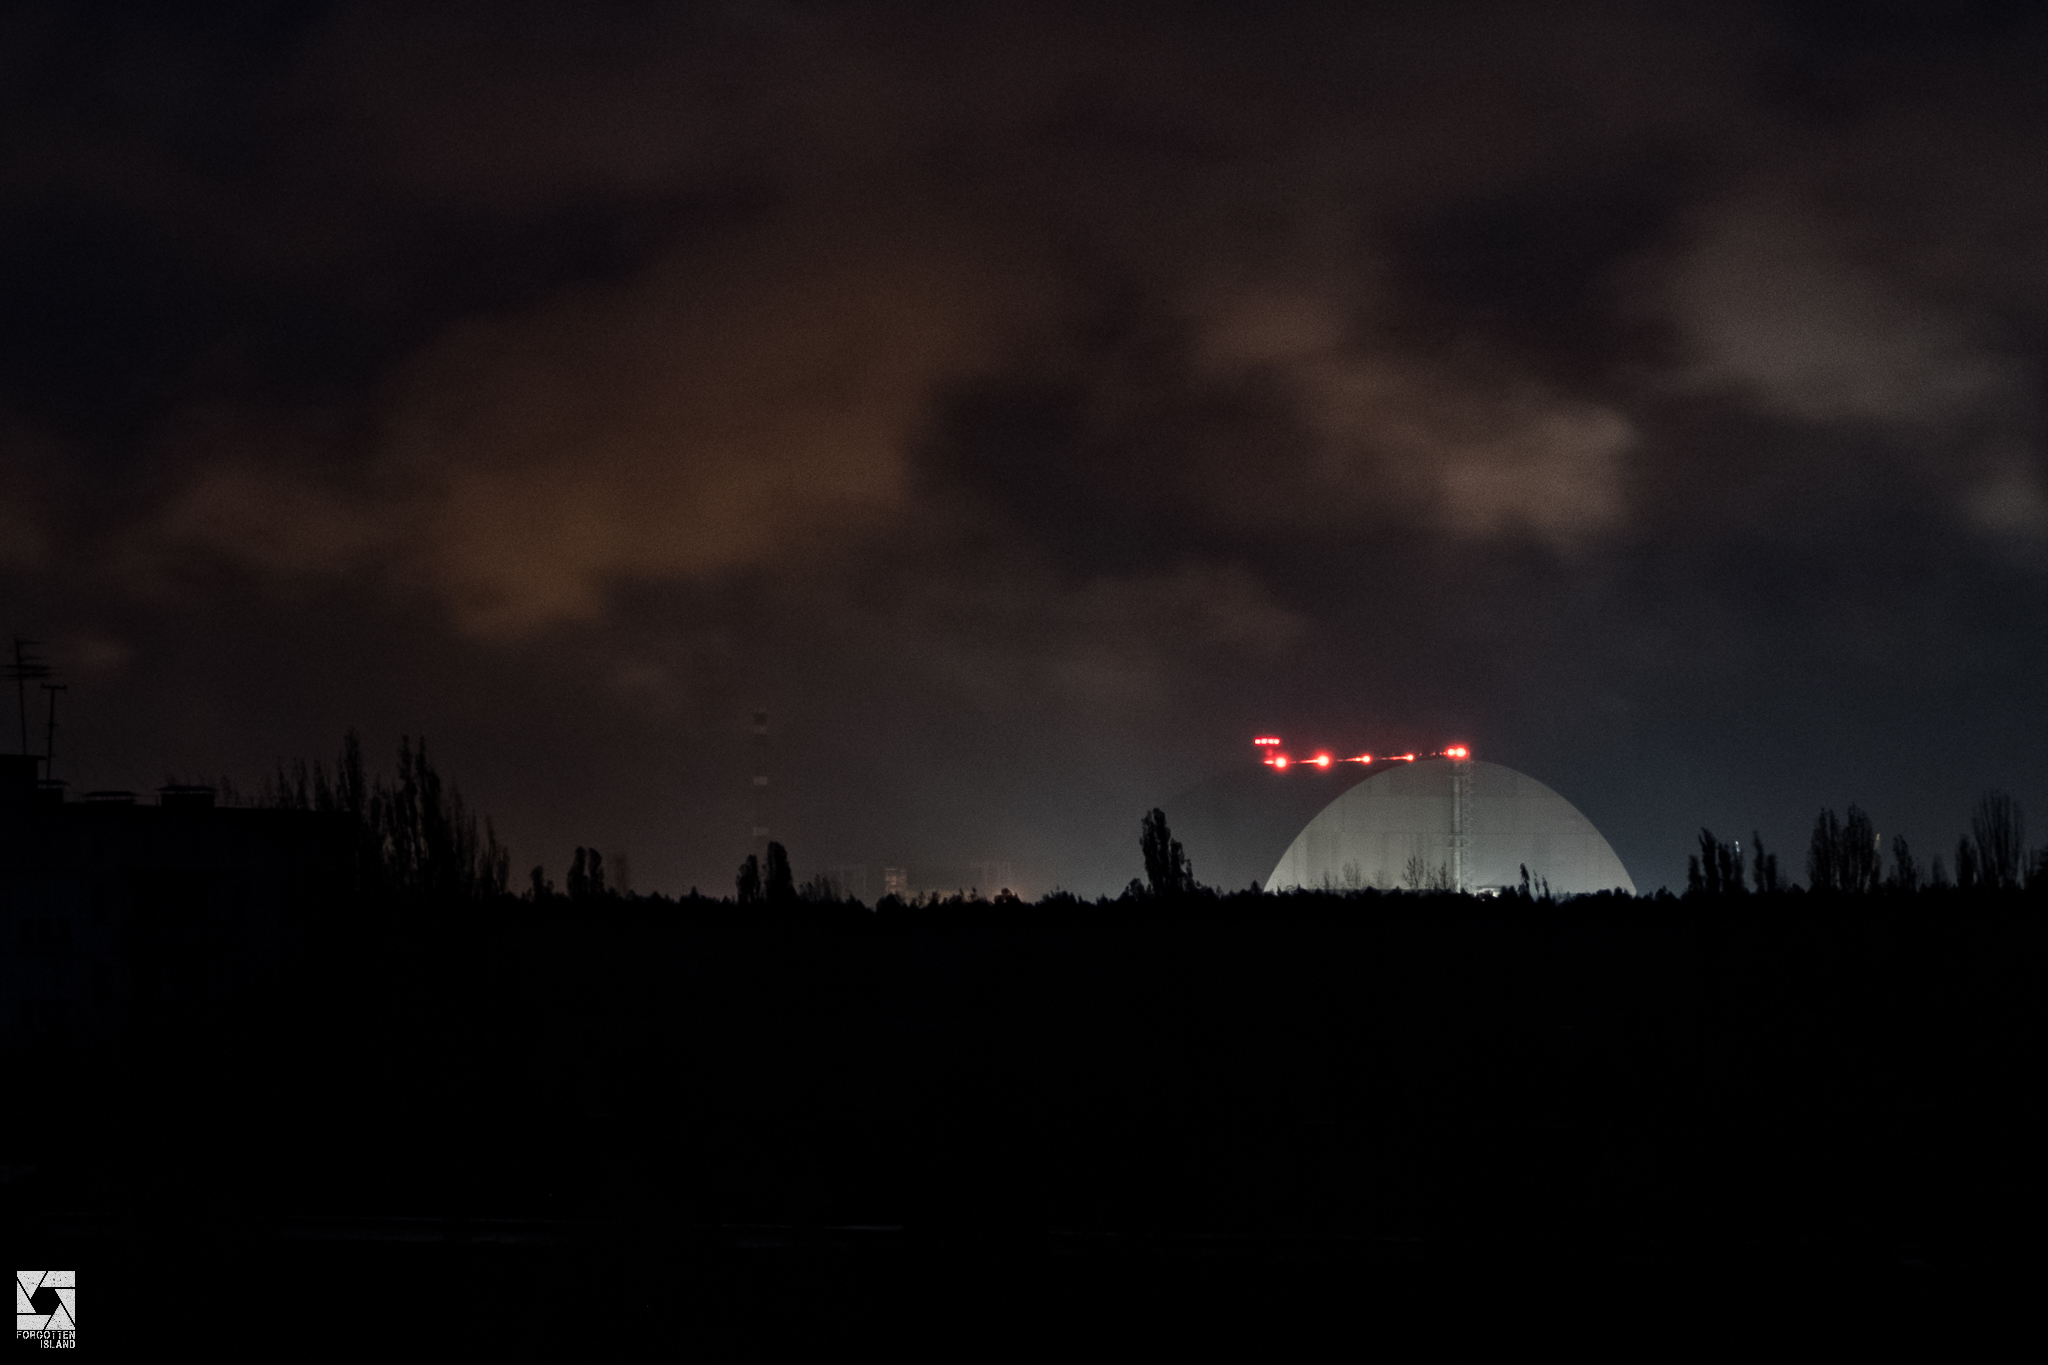 View of the Chernobyl Nuclear Power Plant